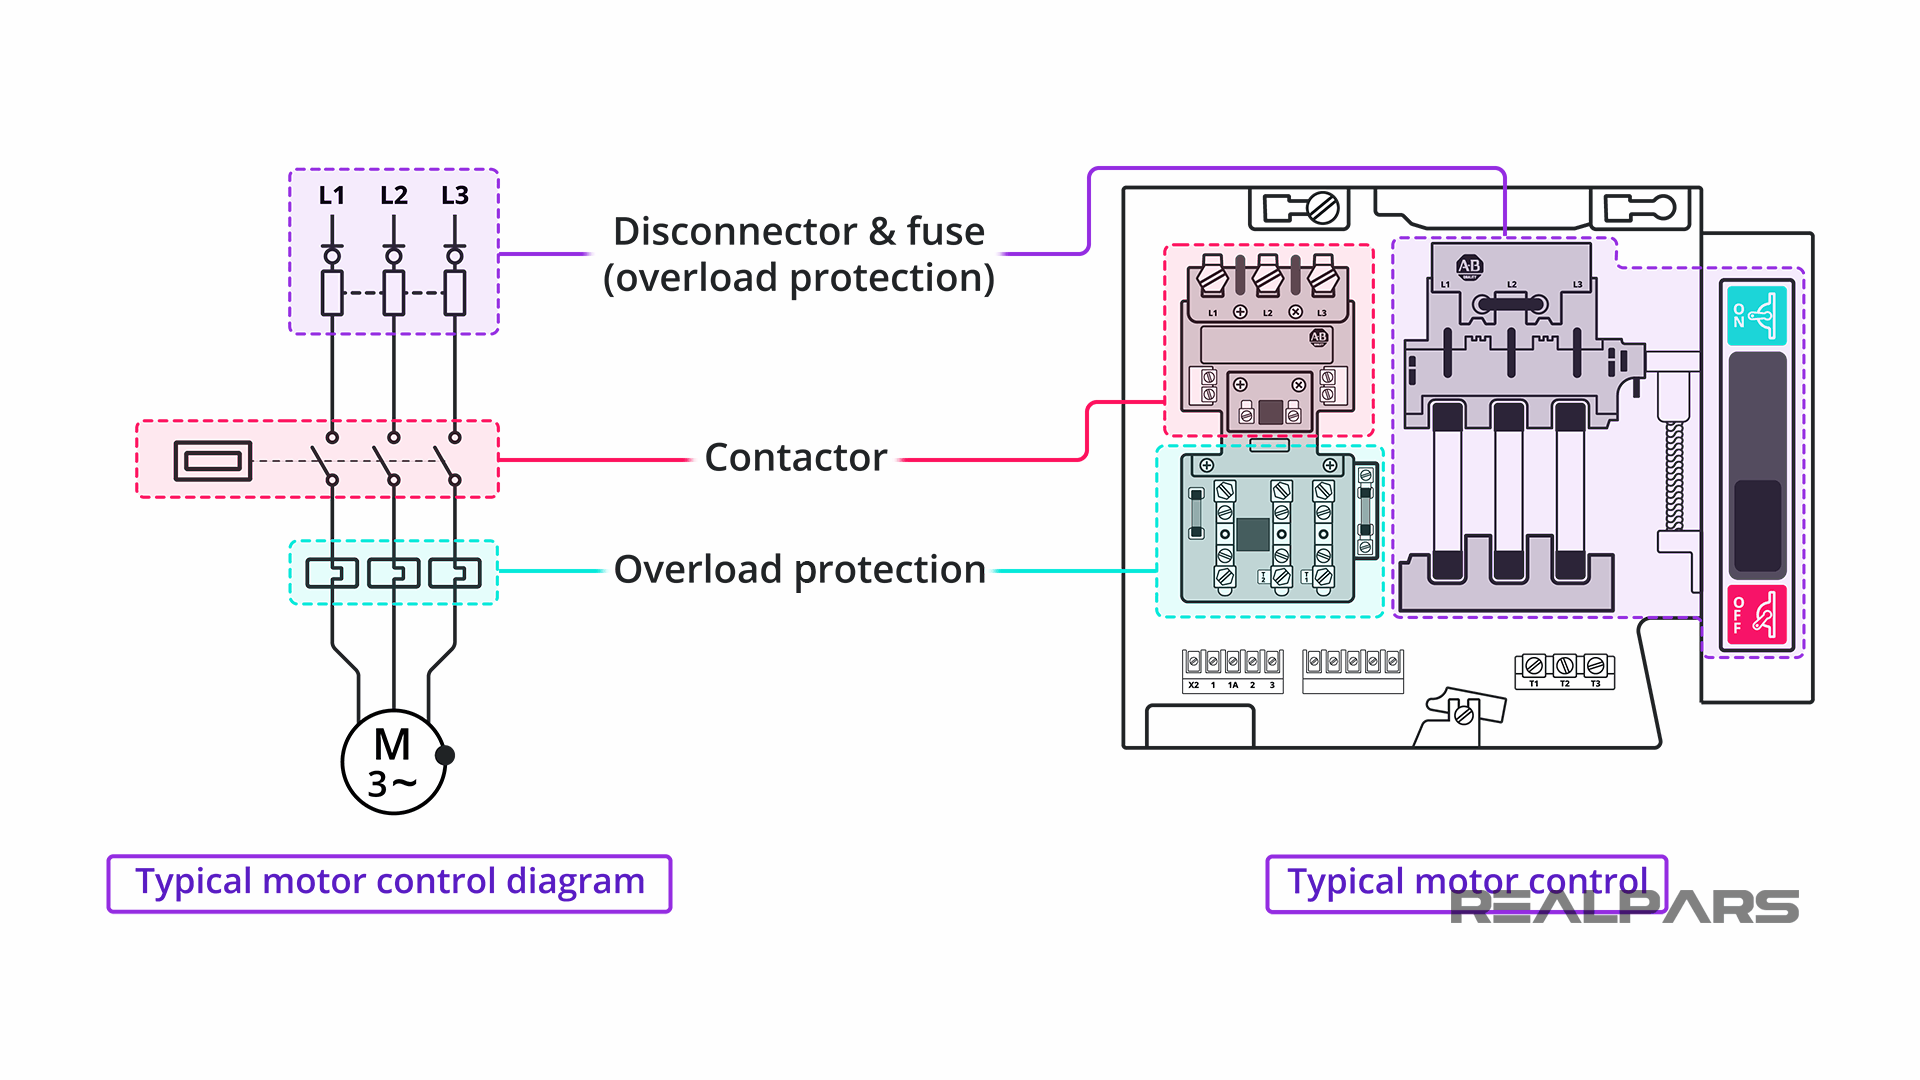 Motor controller components